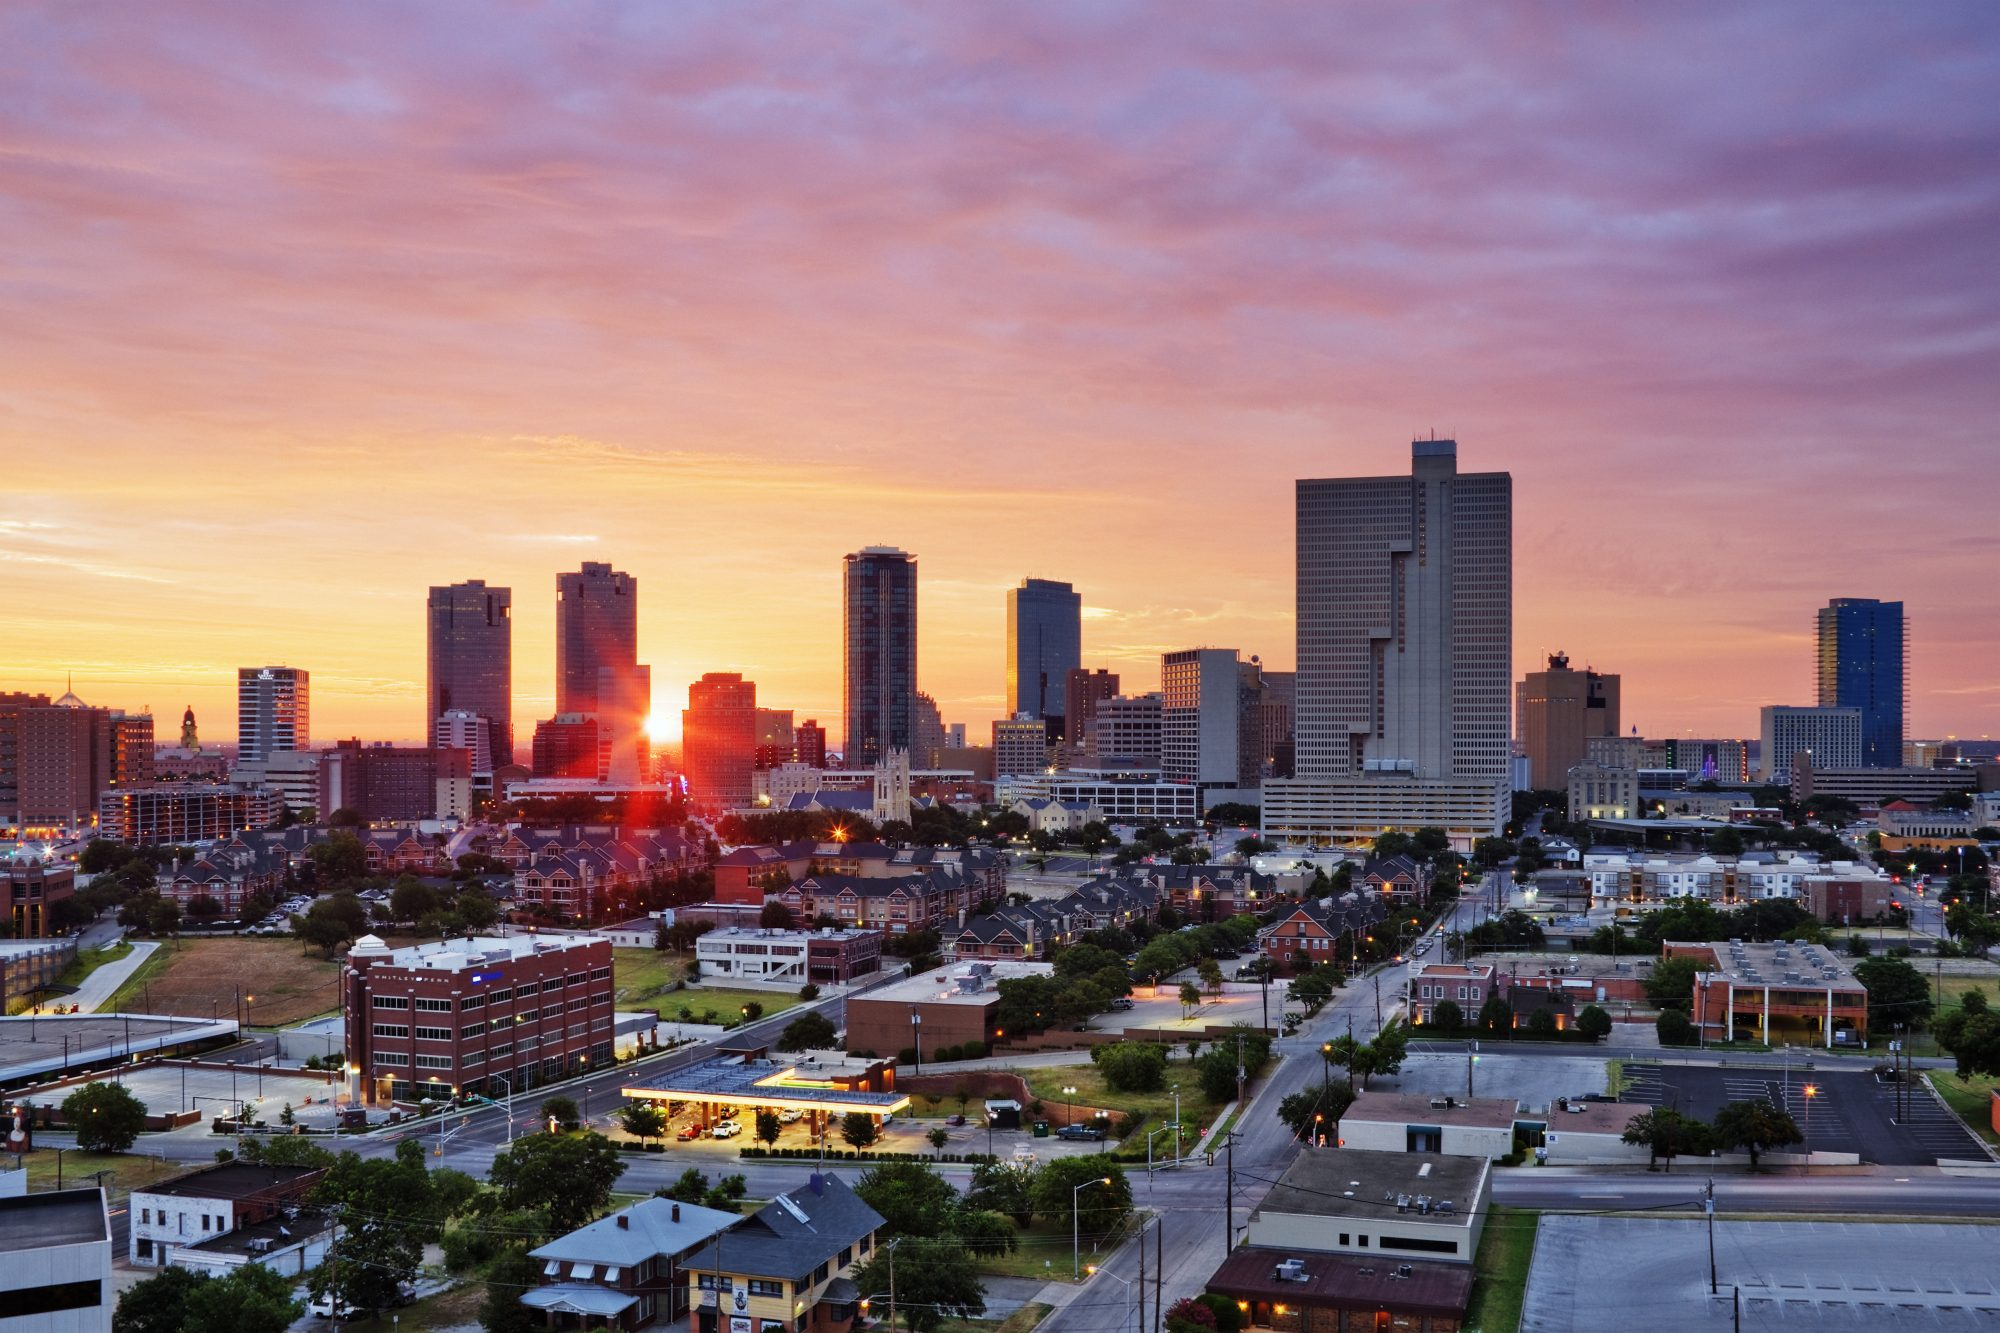 10. Fort Worth, Texas